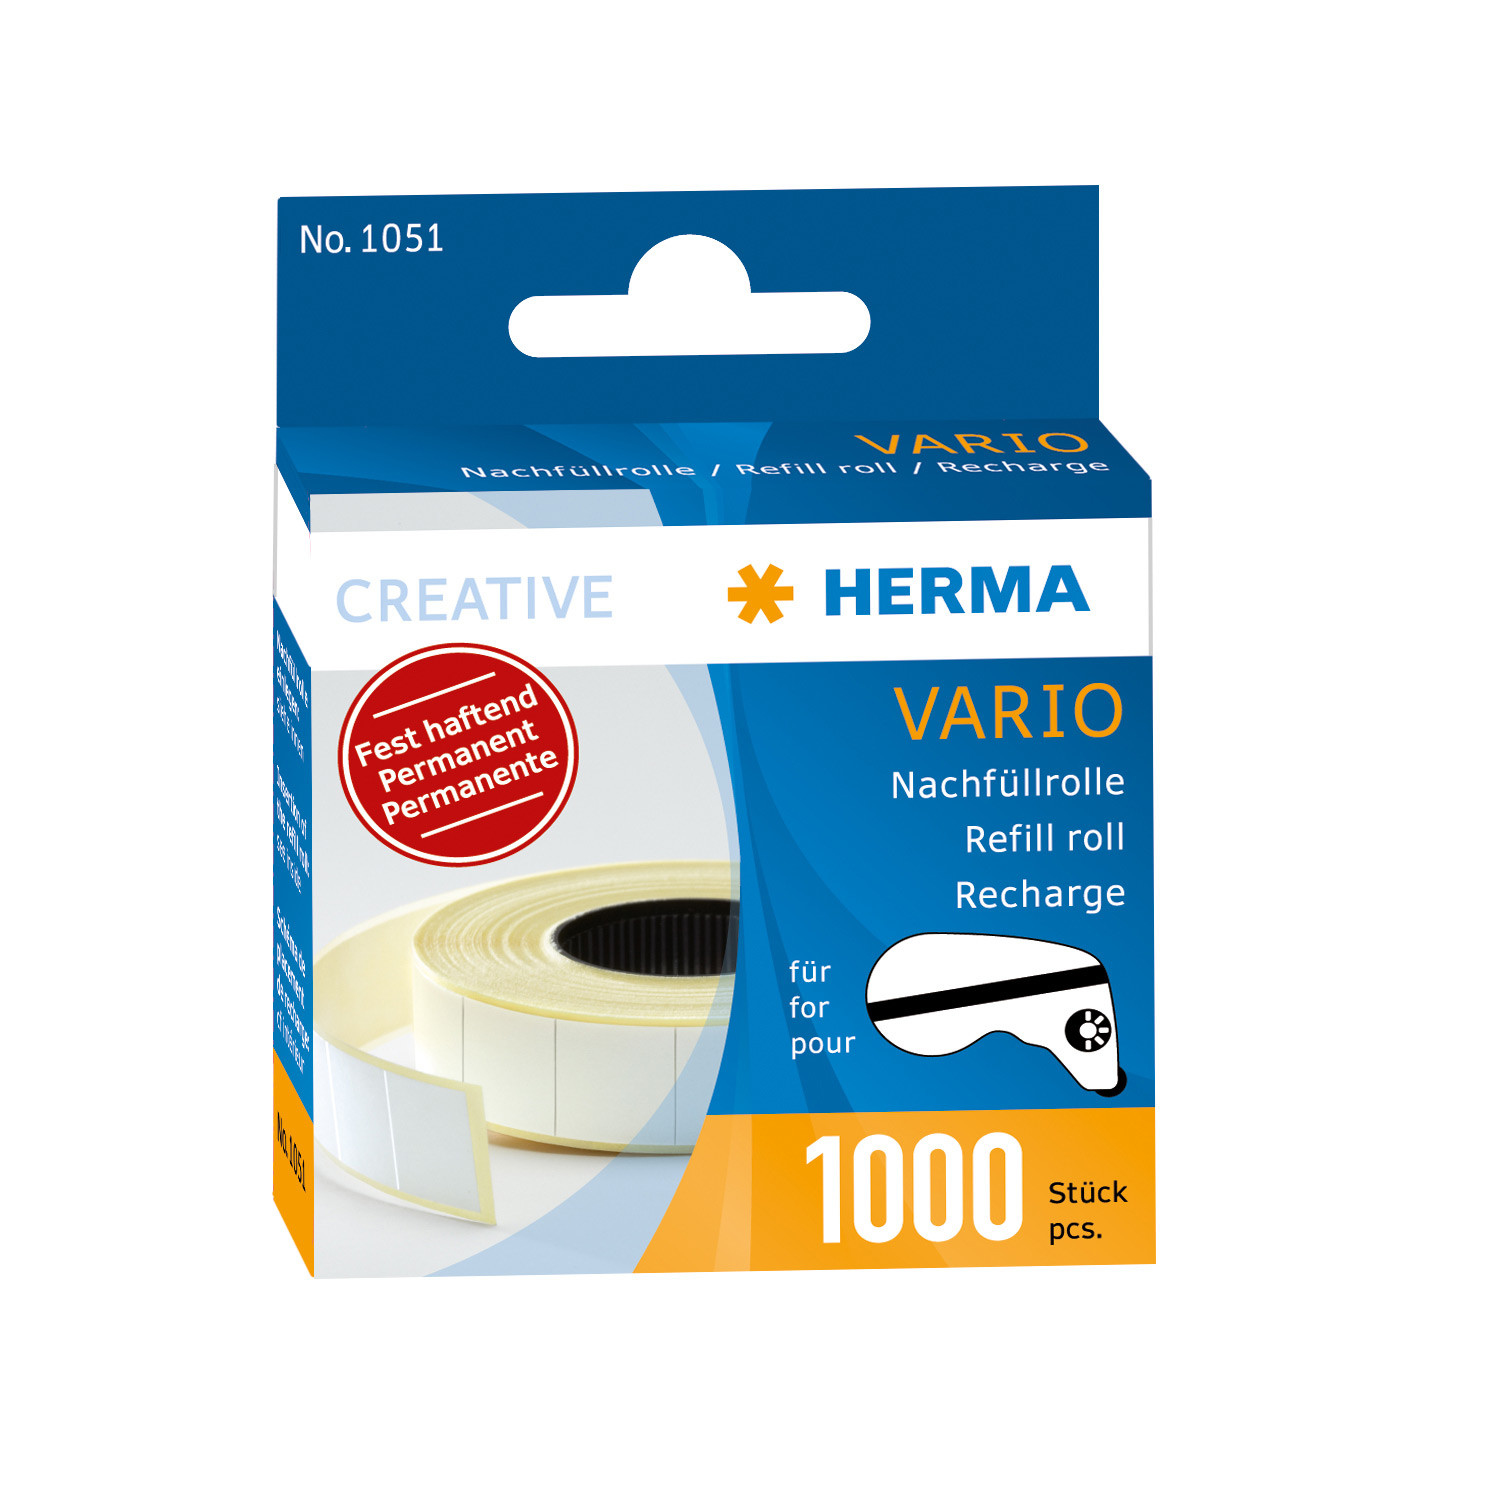 Herma Hermafix Refill Pack for Vario Glue Dispenser        1051